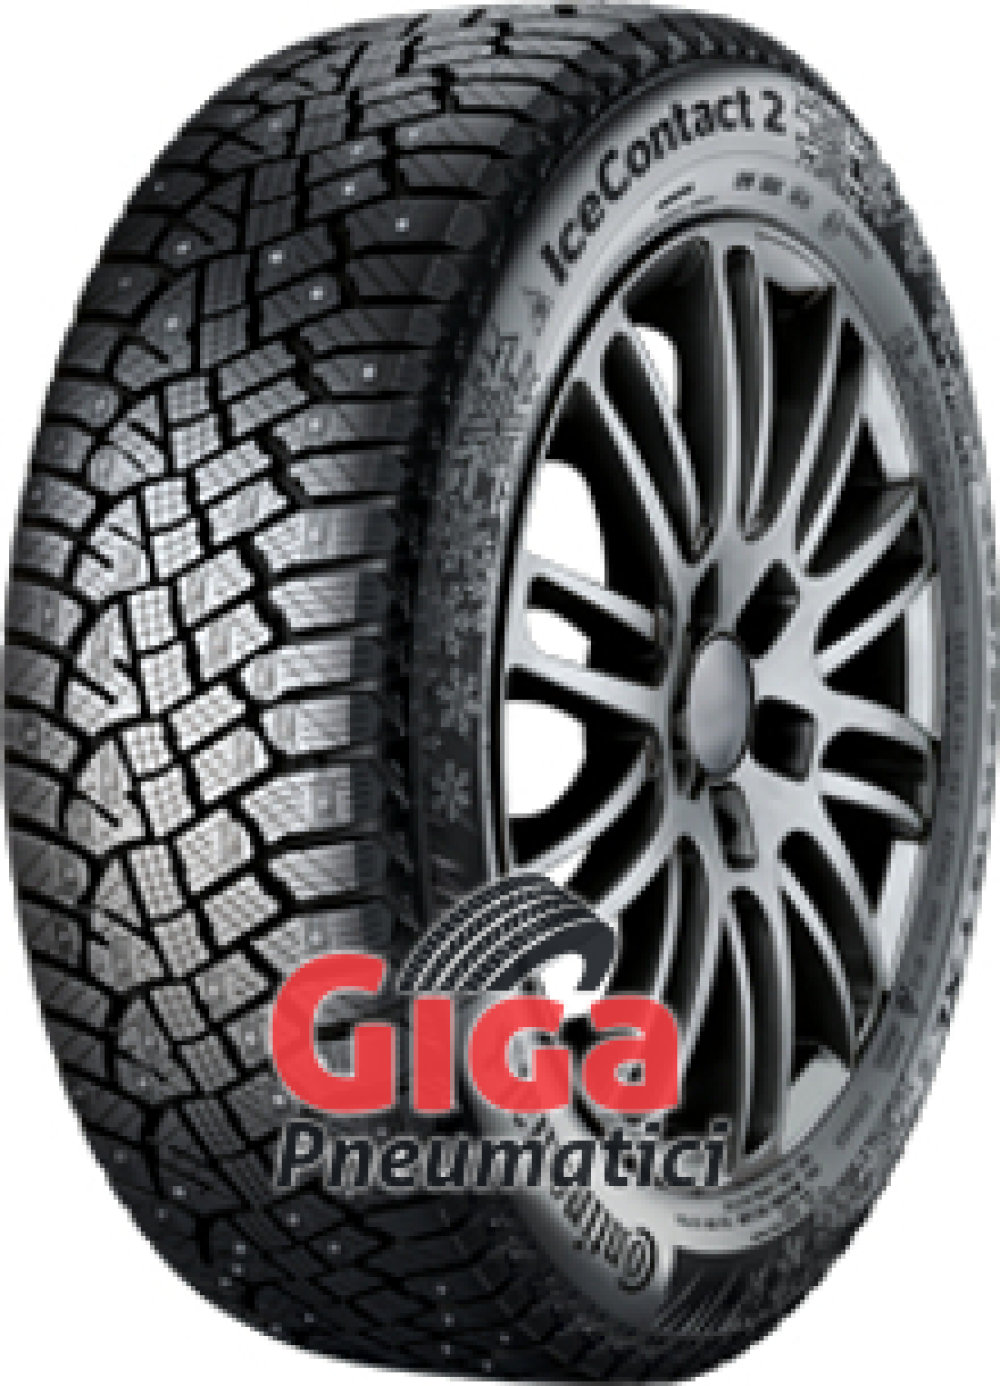 Continental Conti Ice Contact 2 ( 185/70 R14 92T XL , pneumatico chiodato )